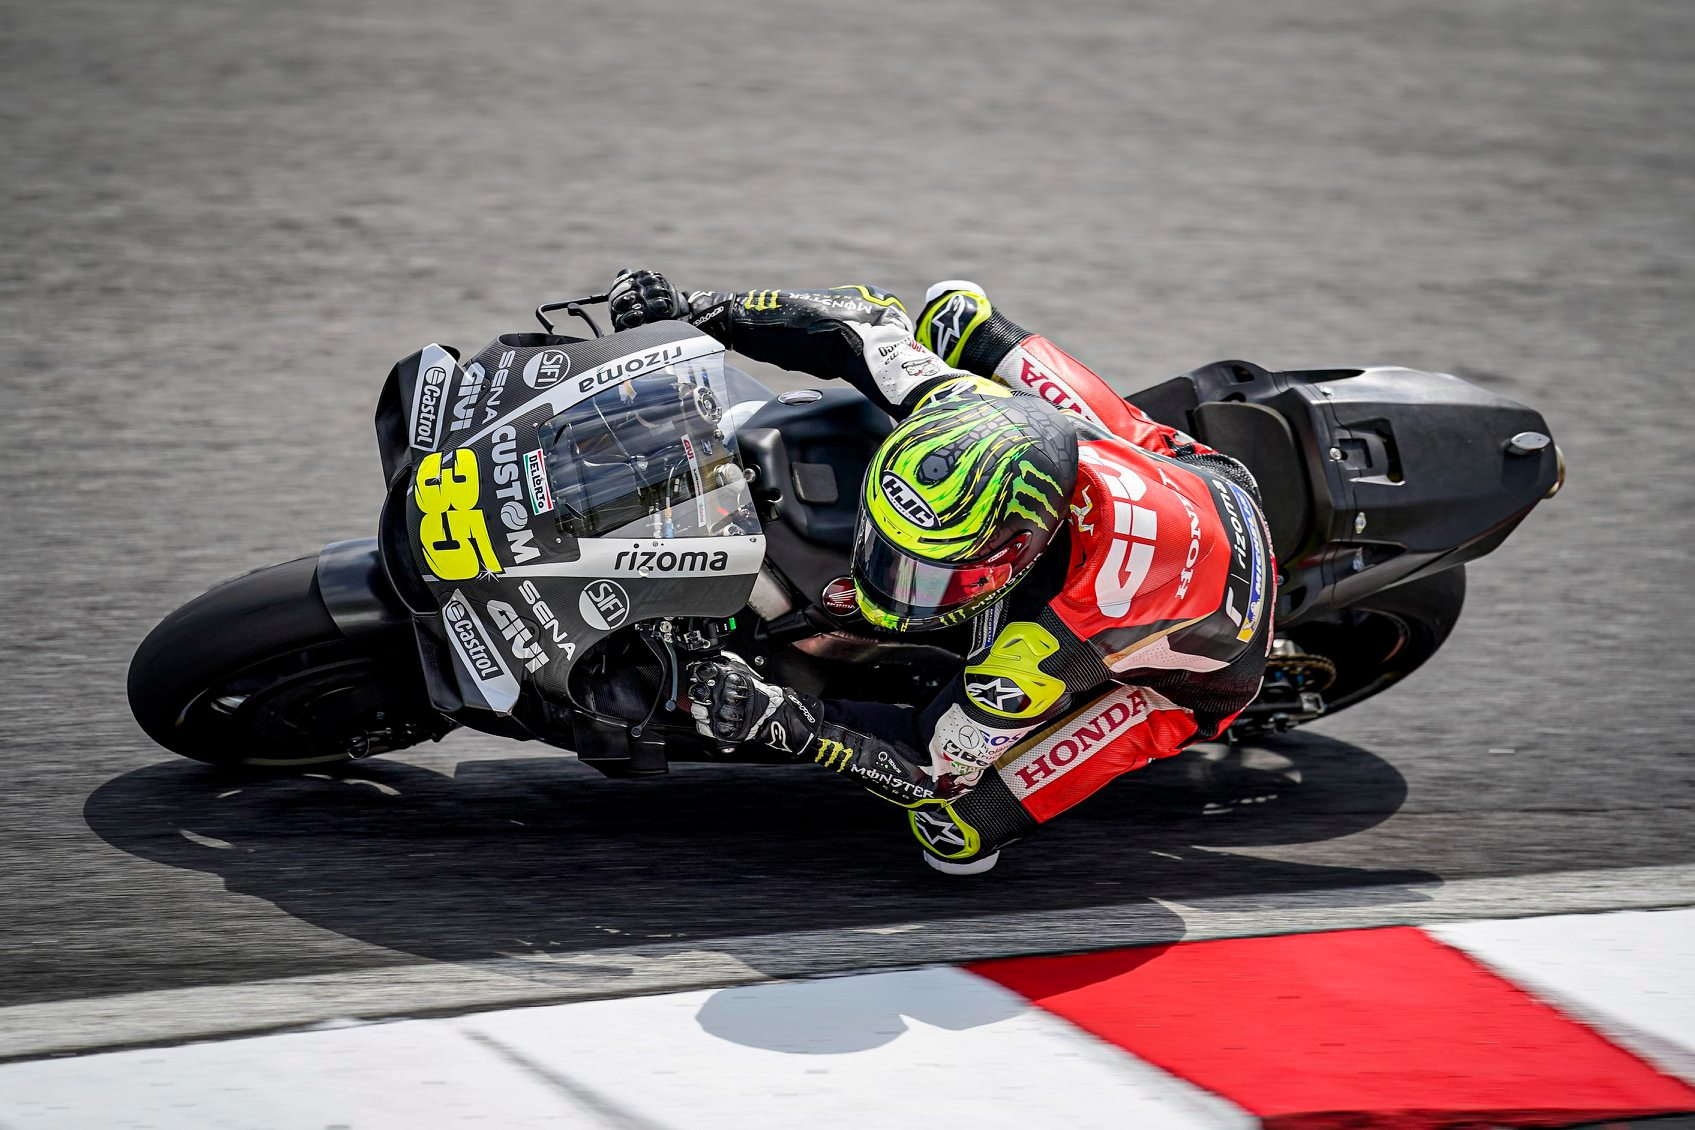 Crutchlow continues demanding test schedule in Sepang